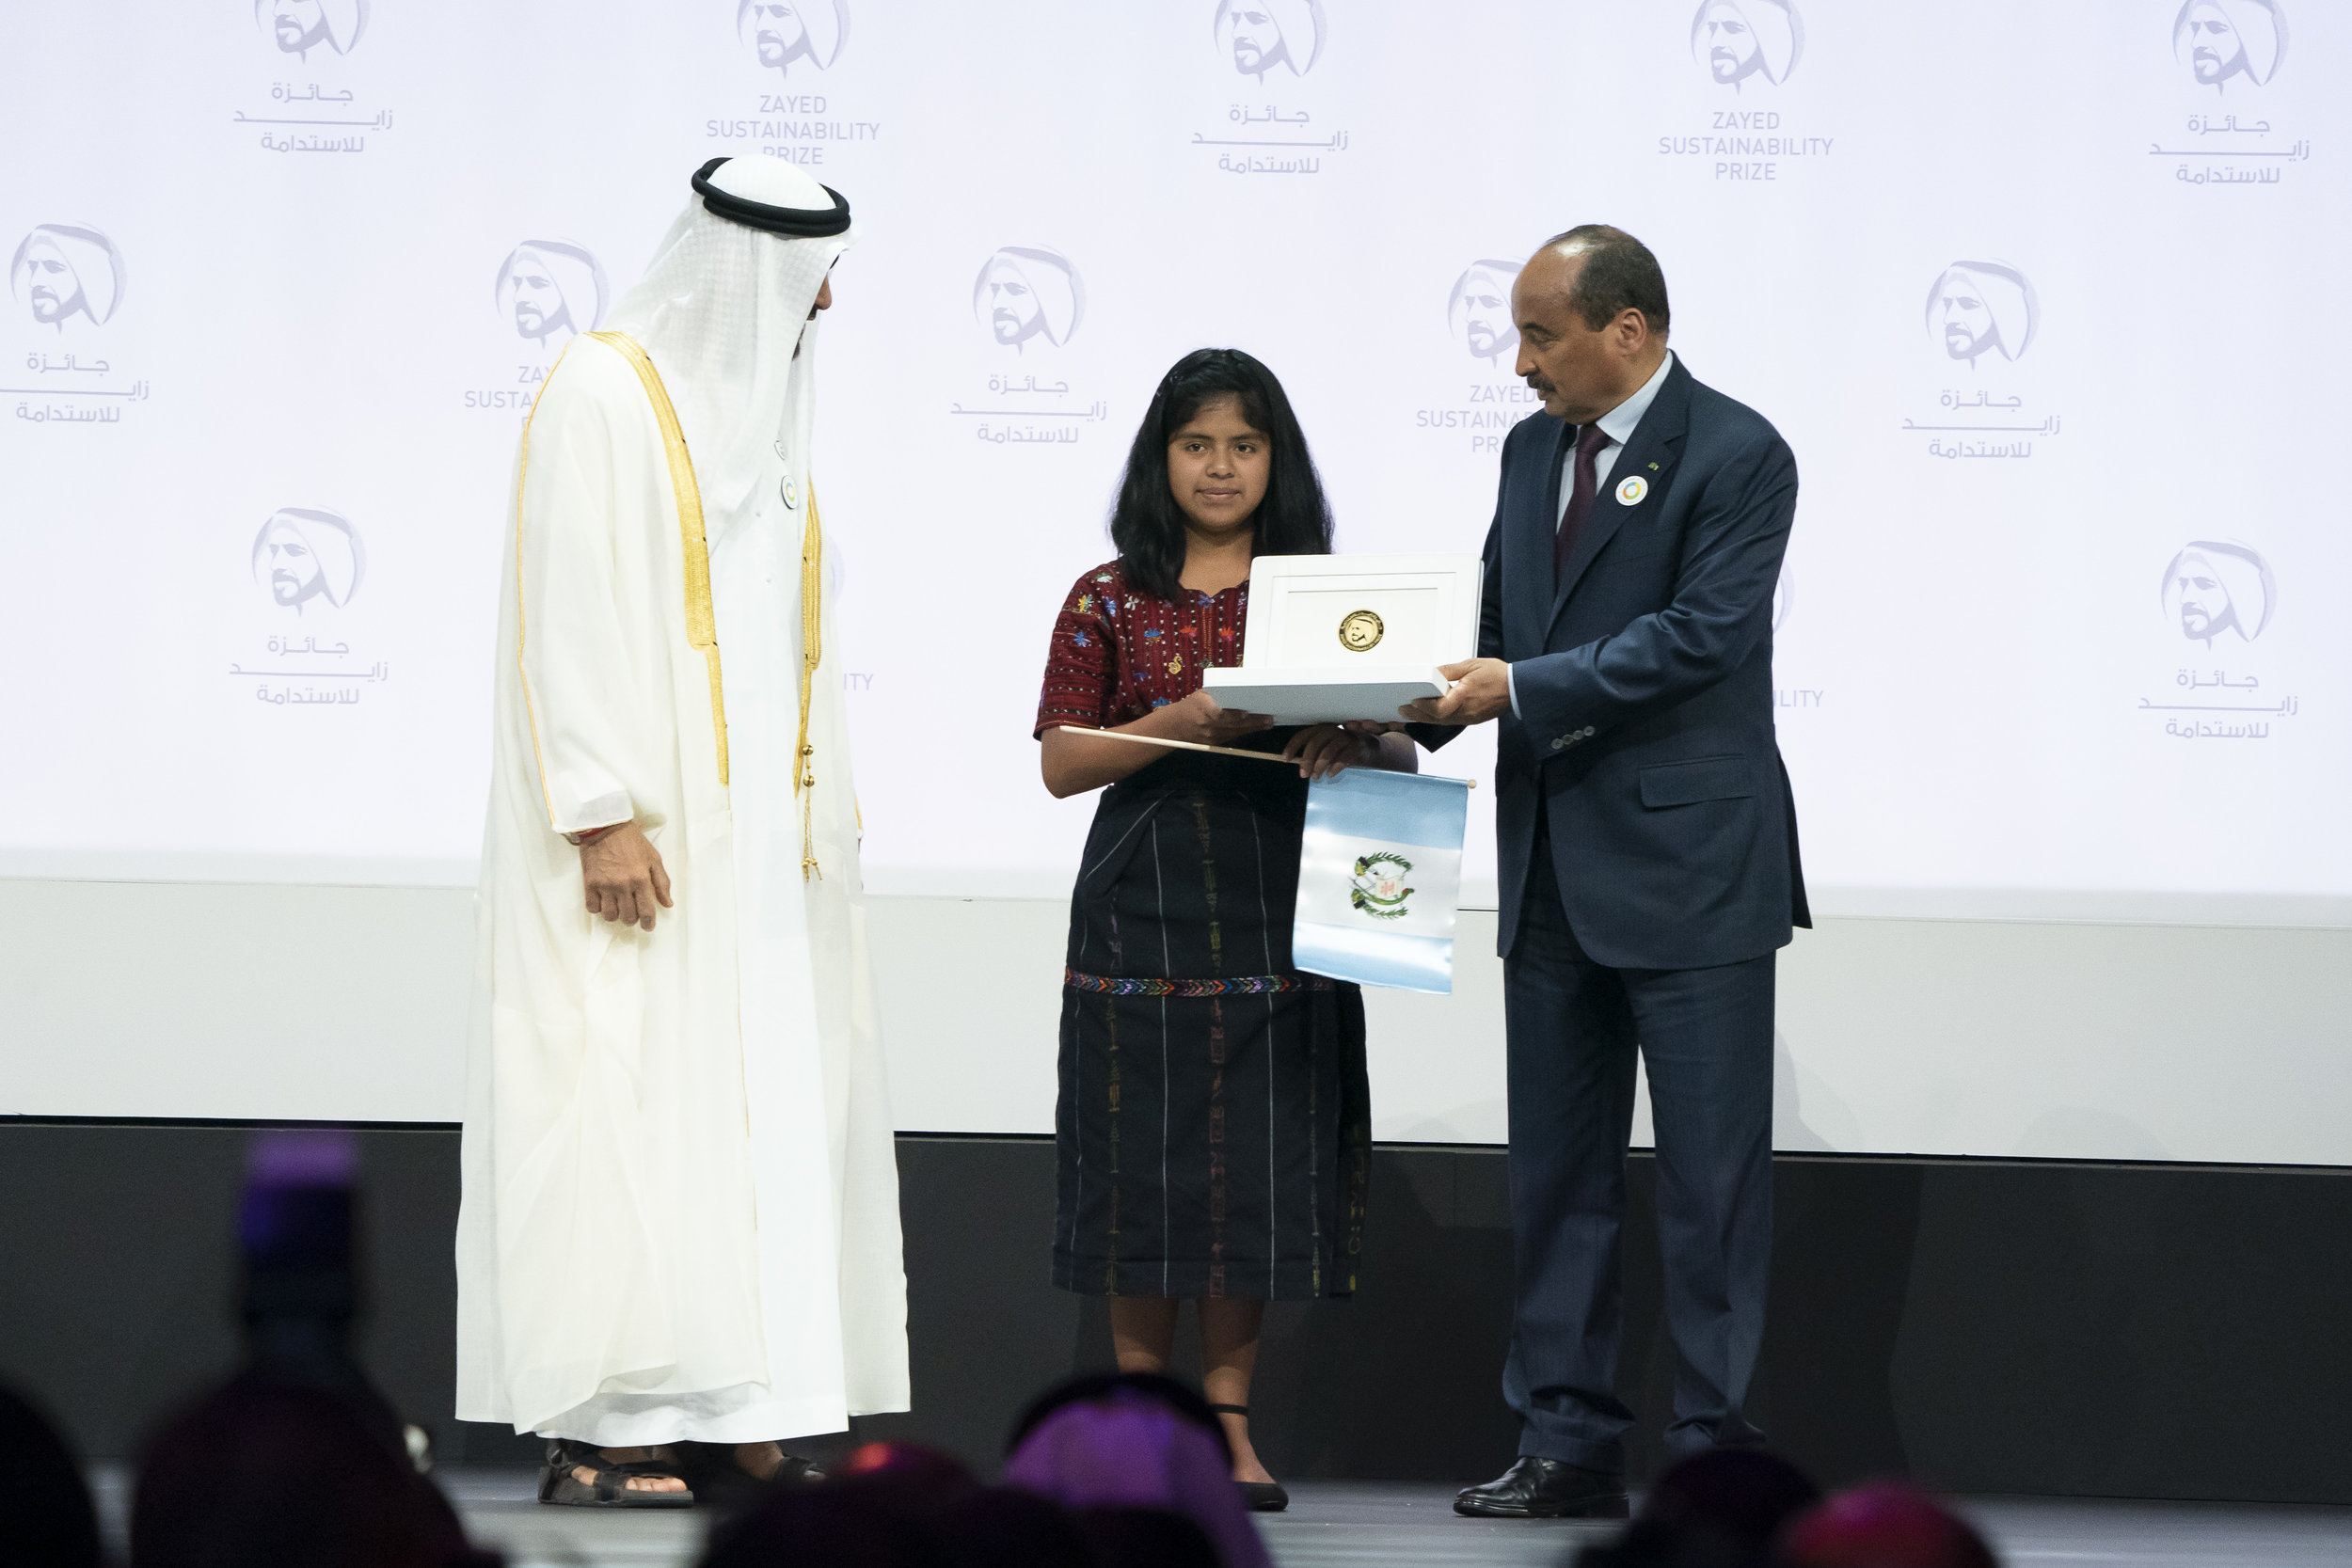 Foto: Zayed Sustainability Prize 2019